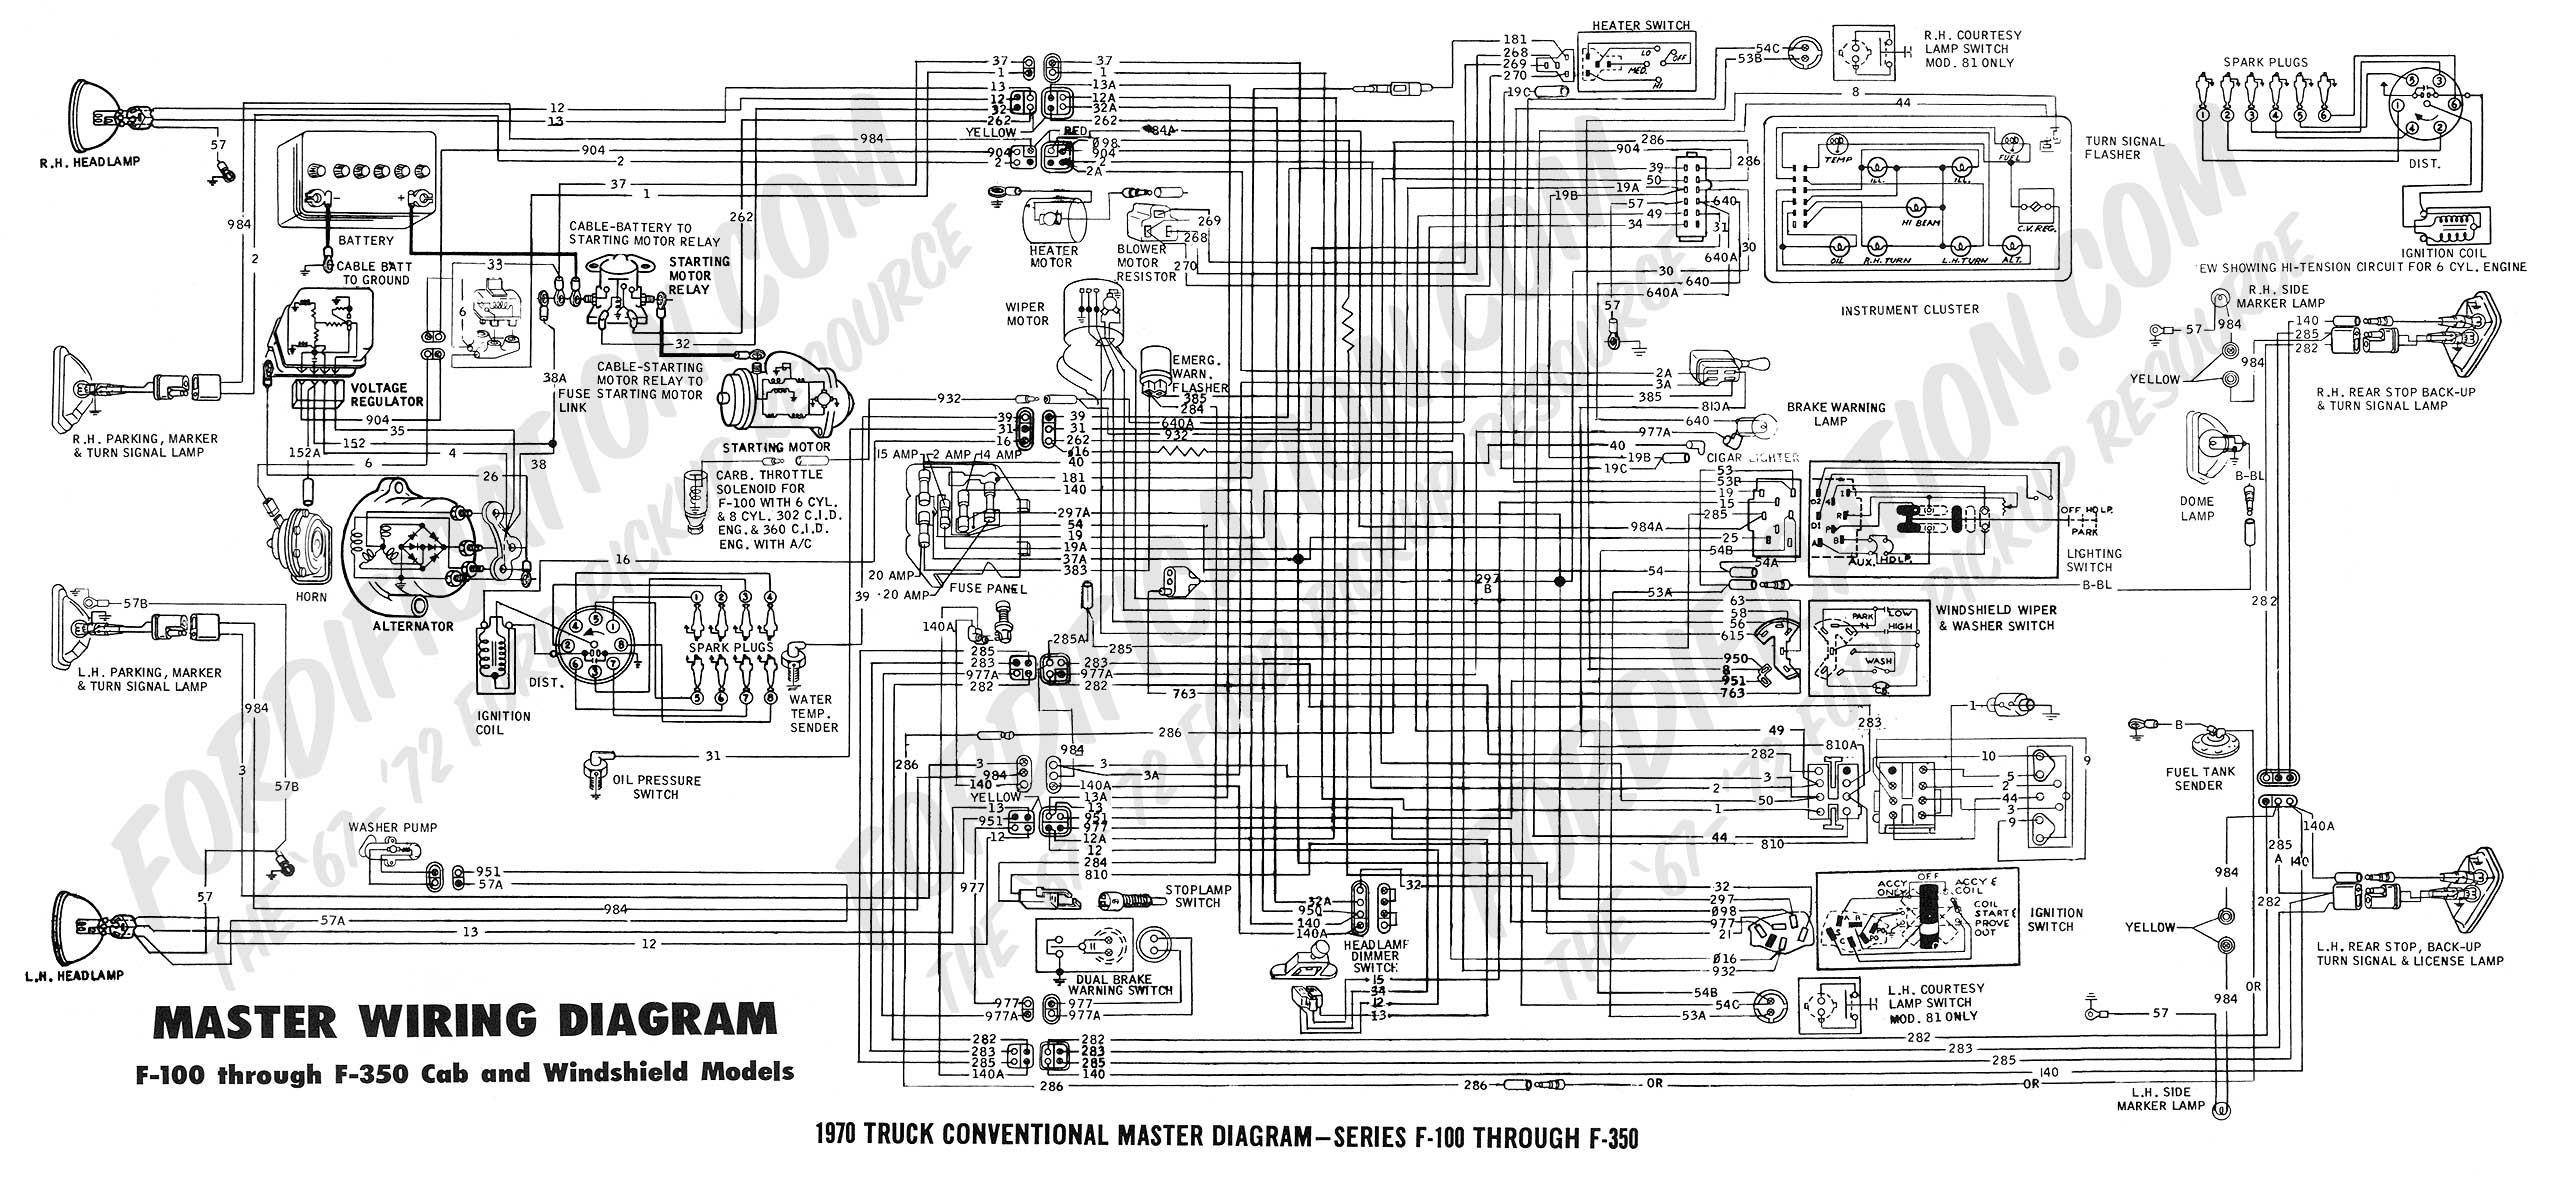 Renault Master Wiring Diagram on 2003 ford mustang v6 fuse box dia…